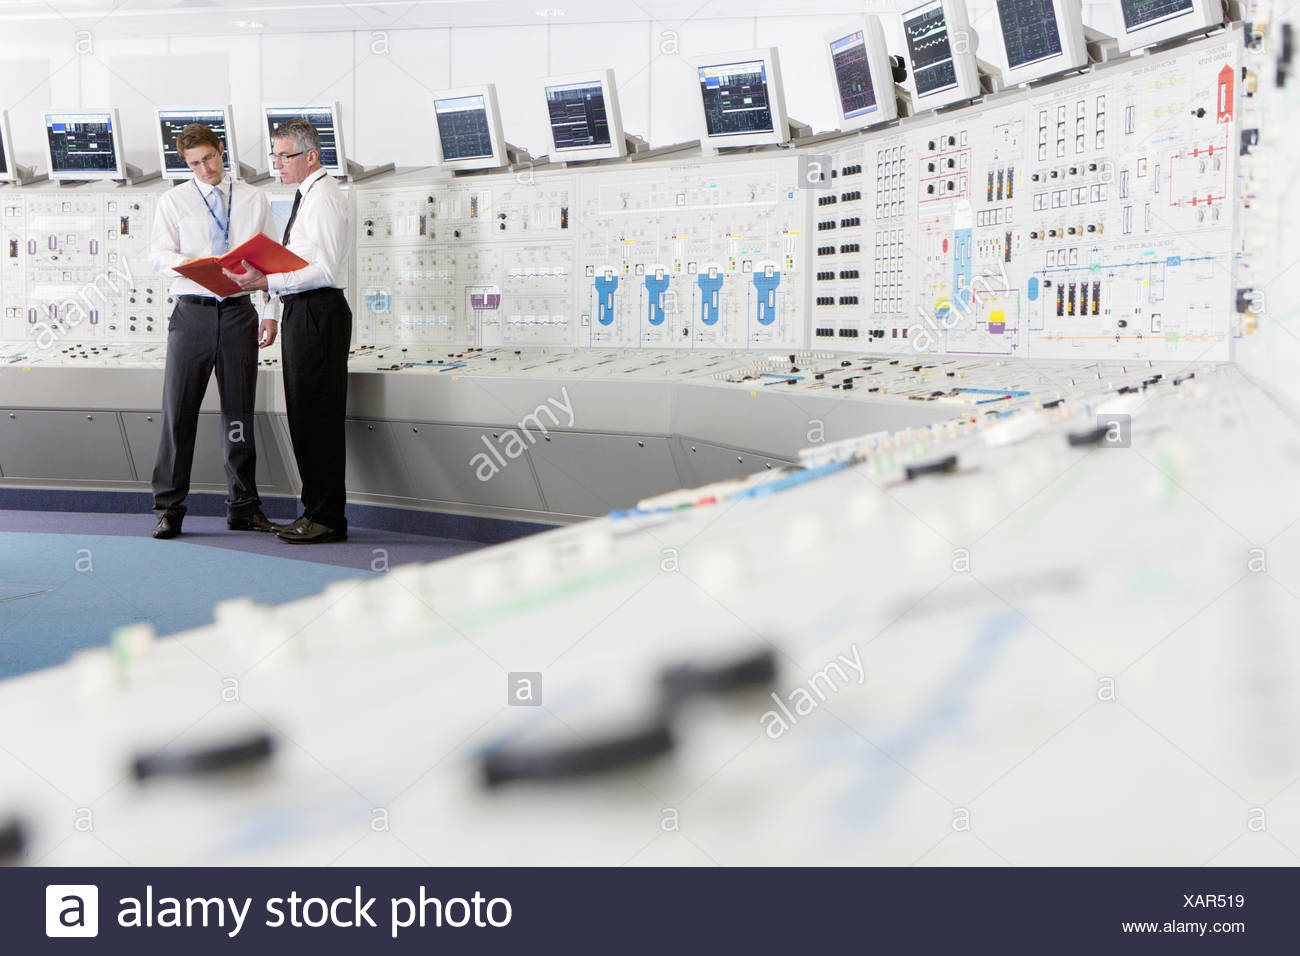 Engineers discussing paperwork in control room of nuclear power station - Stock Image